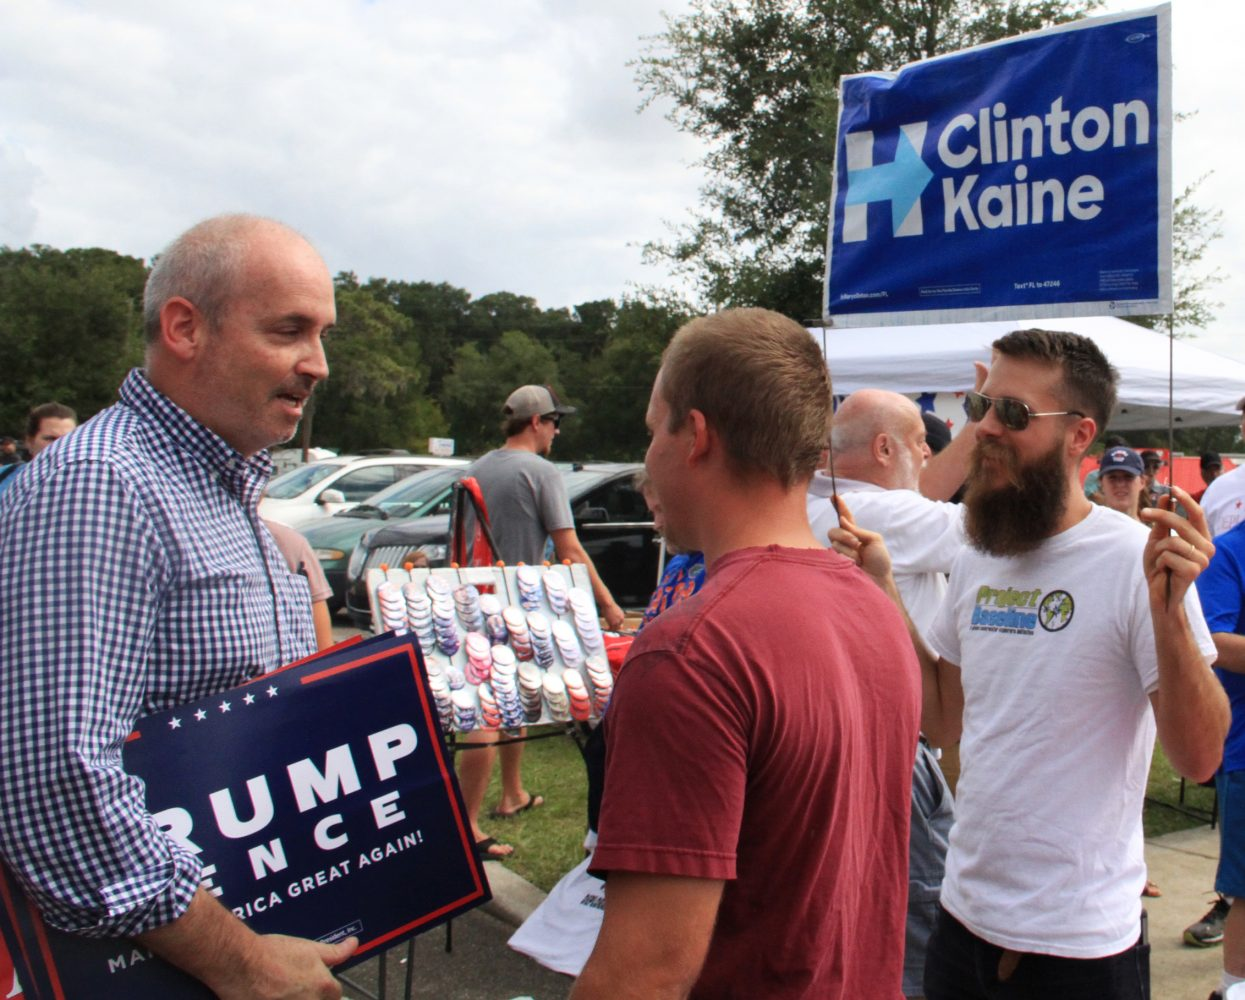 Rich Denmark holds a Clinton/Kaine sign as people leave the arena Wednesday afternoon. Even though no protestors were removed from the venue during the rally, the audience booed requests from the stage not to harm any who might try to disrupt the proceedings.